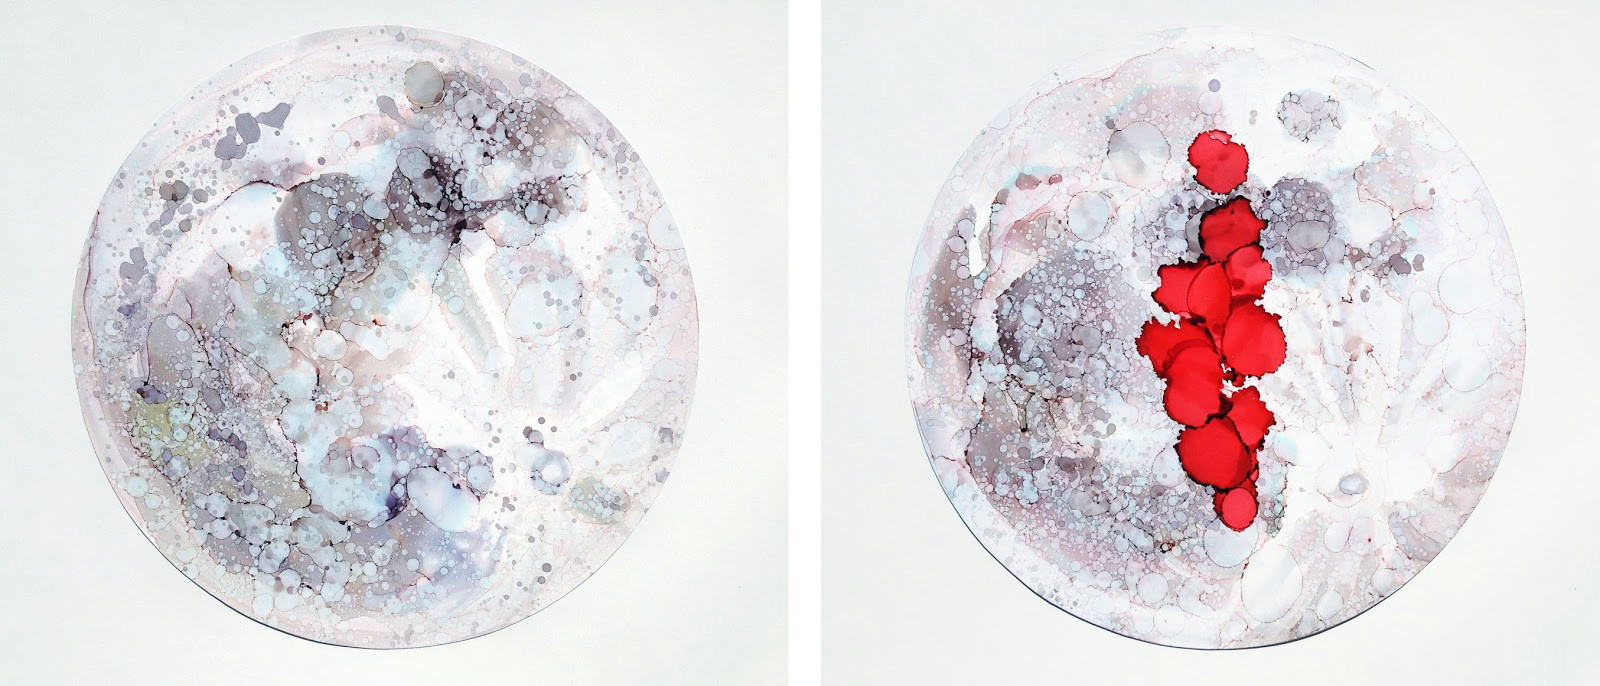 Moon/Time Alcohol Ink on Polypropylene Paper 2016